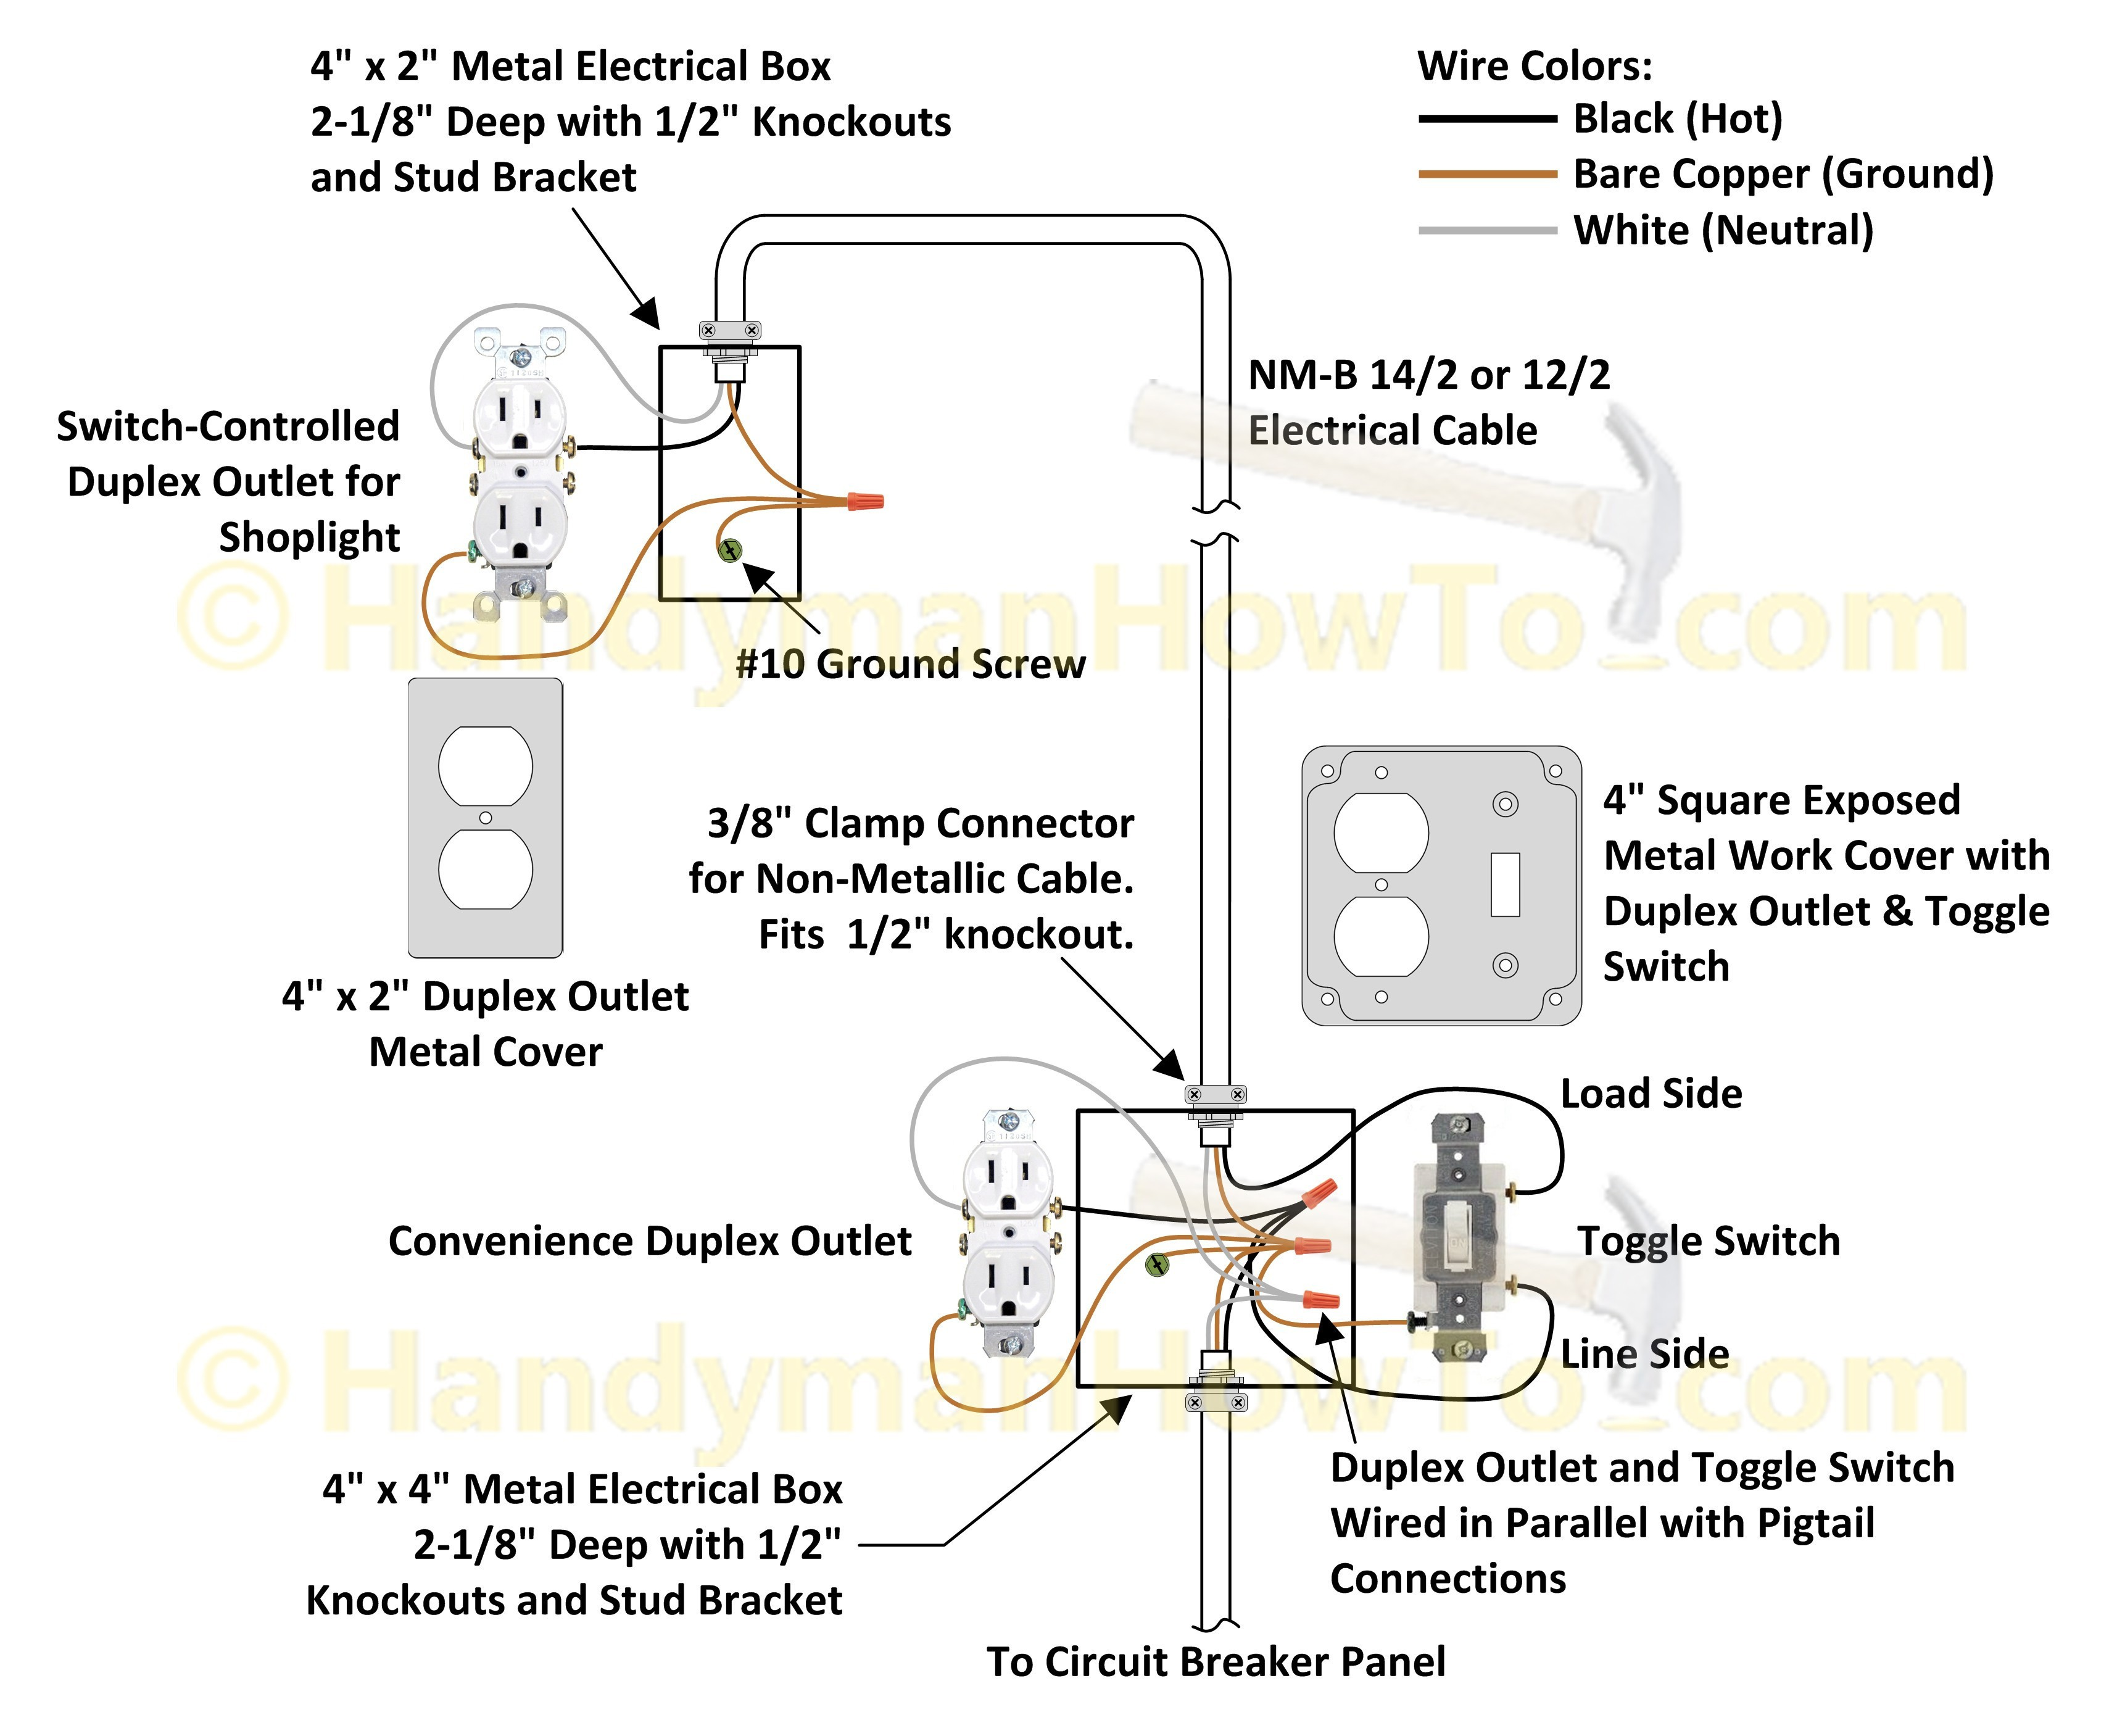 Combination Switch Schematic Wiring Diagram Diagrams Amp Tamper Resistant Single Pole Toggle And 2pole Gfci Leviton Occupancy Sensor Electrical Outlet